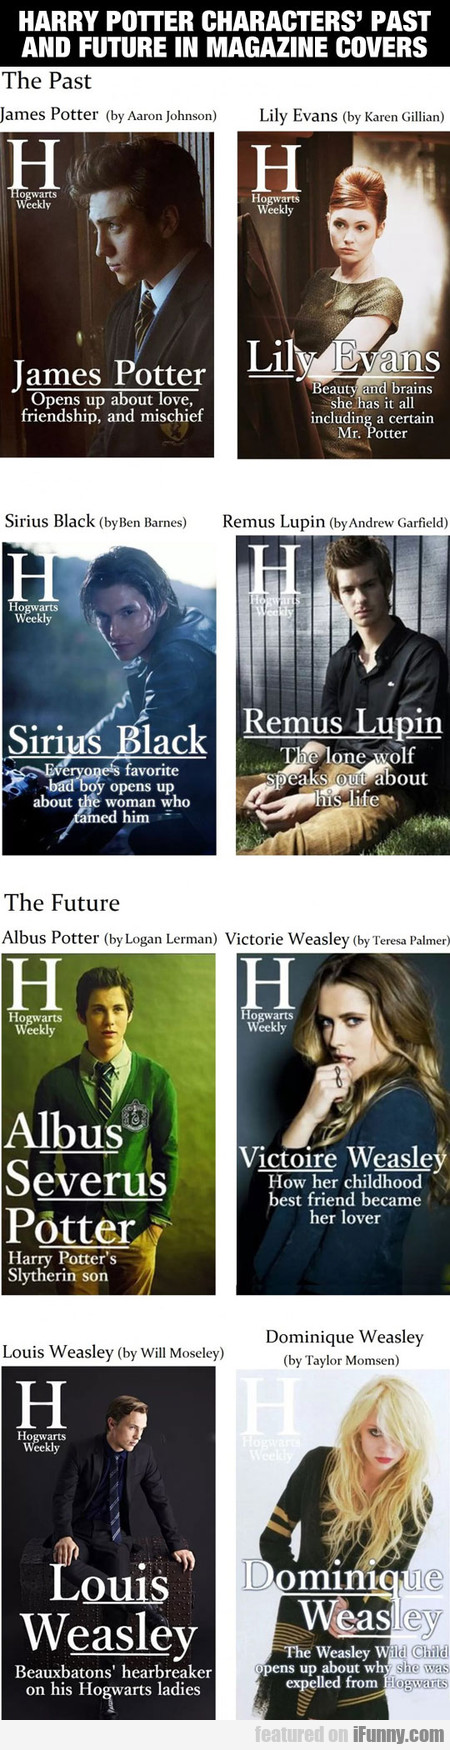 Harry Potter Characters' Past And Future